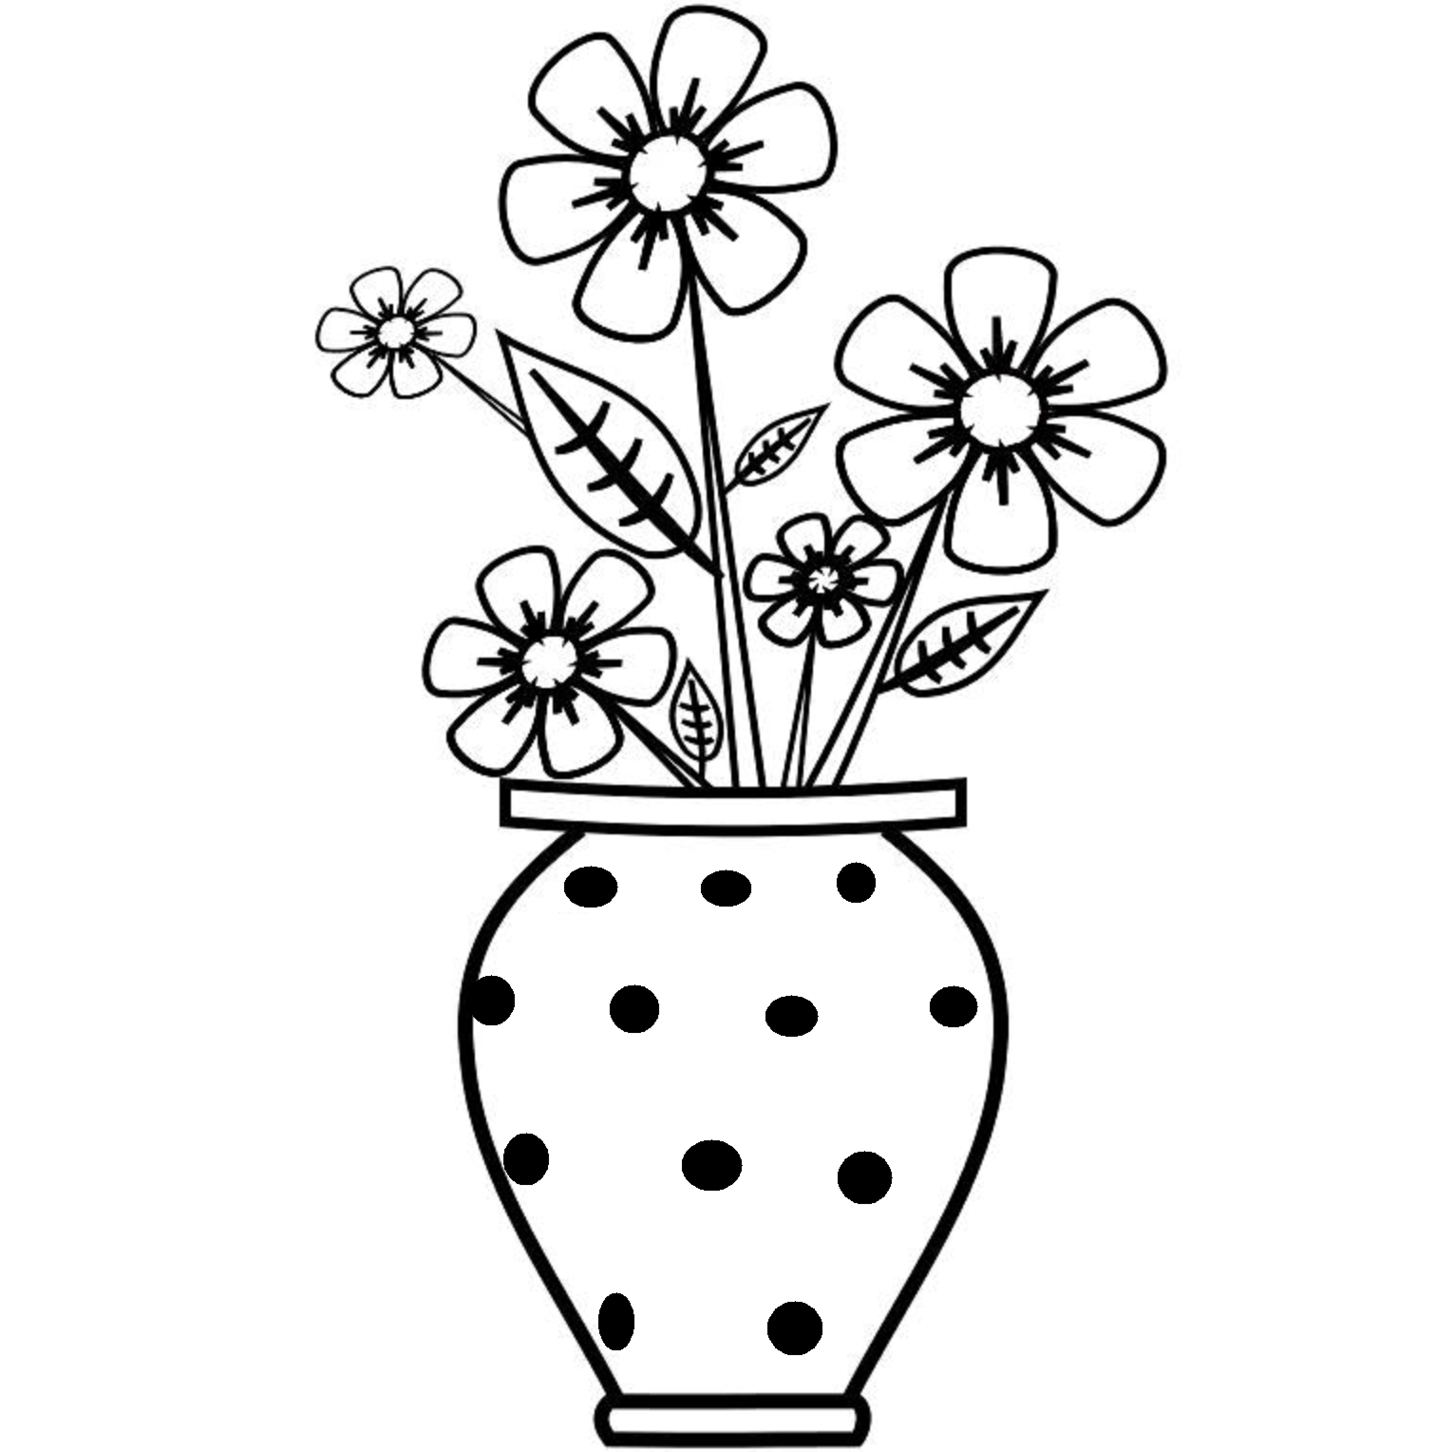 1455x1452 Simple Children Drawing Flower Vase Drawing Of Flower Vase For Kid